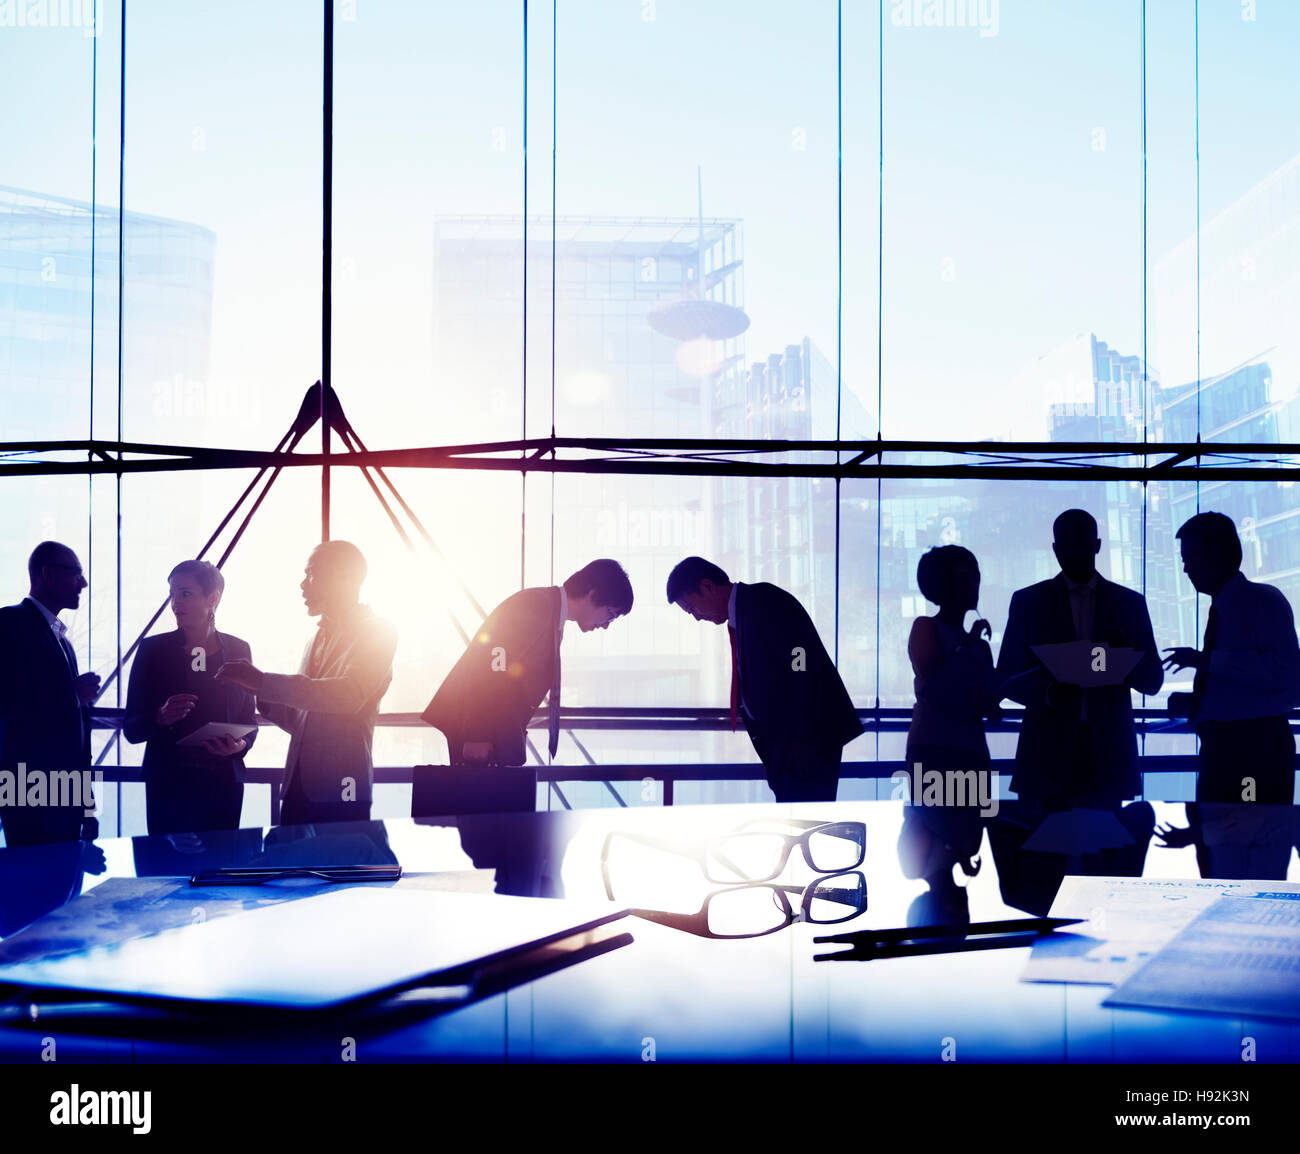 Business people japanese culture bowing respect greeting concept business people japanese culture bowing respect greeting concept m4hsunfo Choice Image